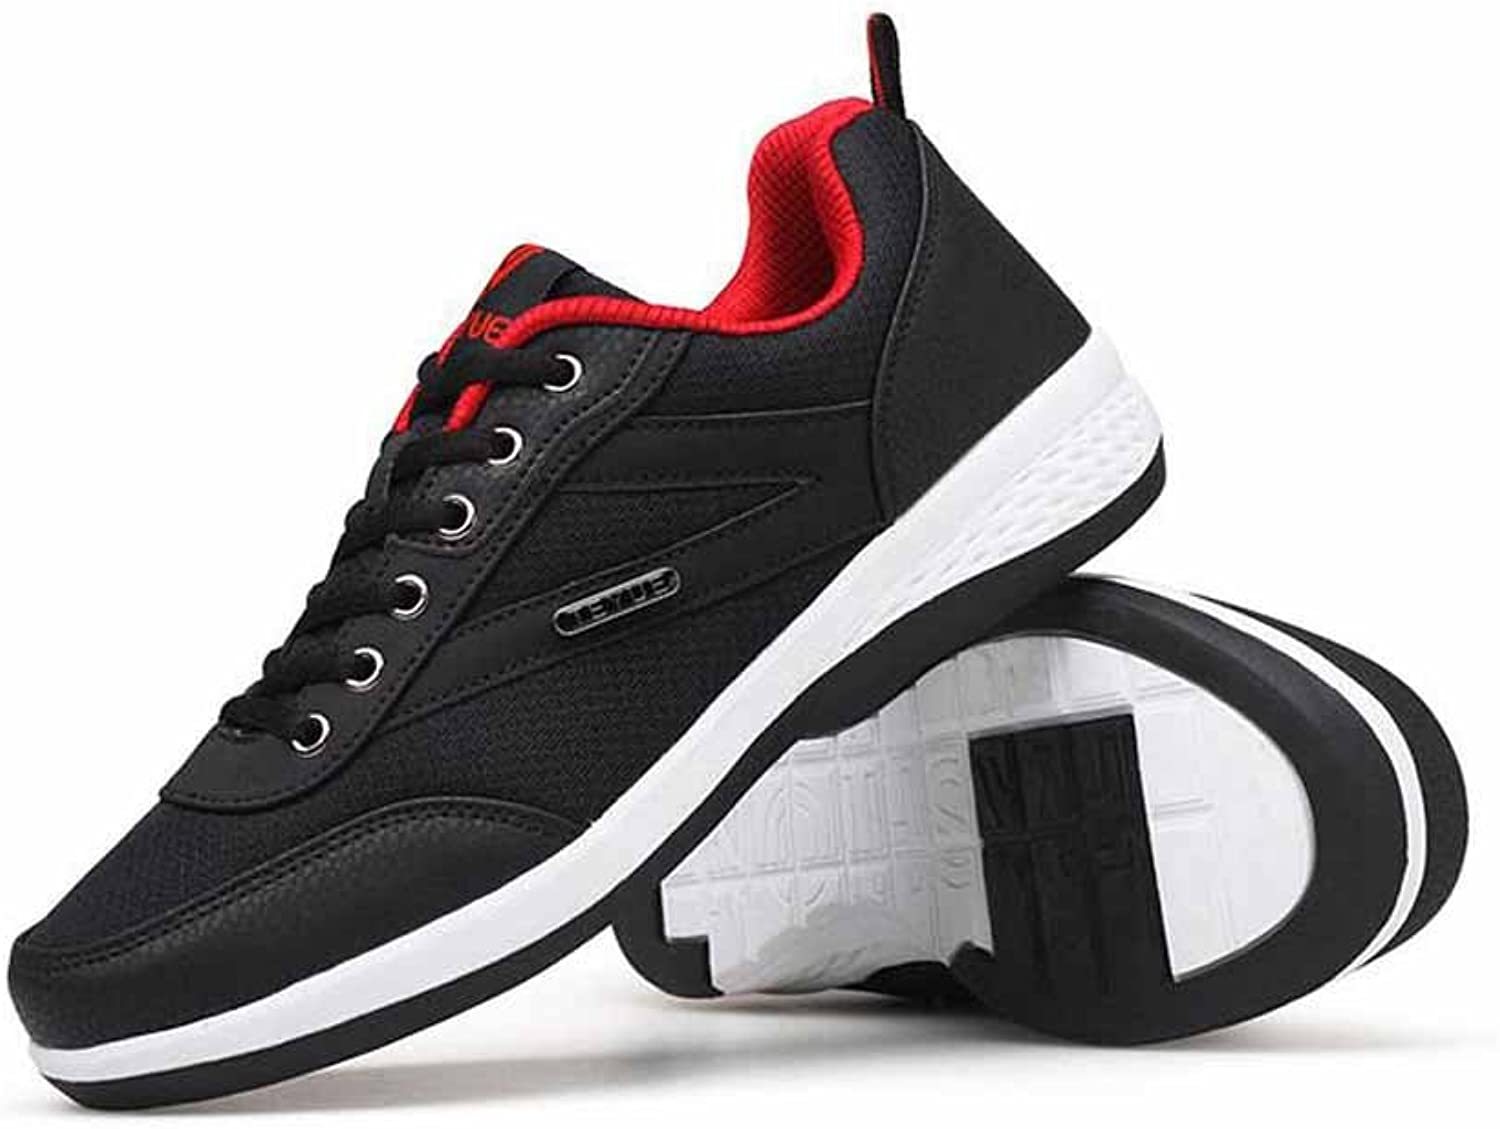 Men Outdoor Sneakers Casual Athletic shoes New Breathable Lace Up Running shoes (color   Black, Size   43)